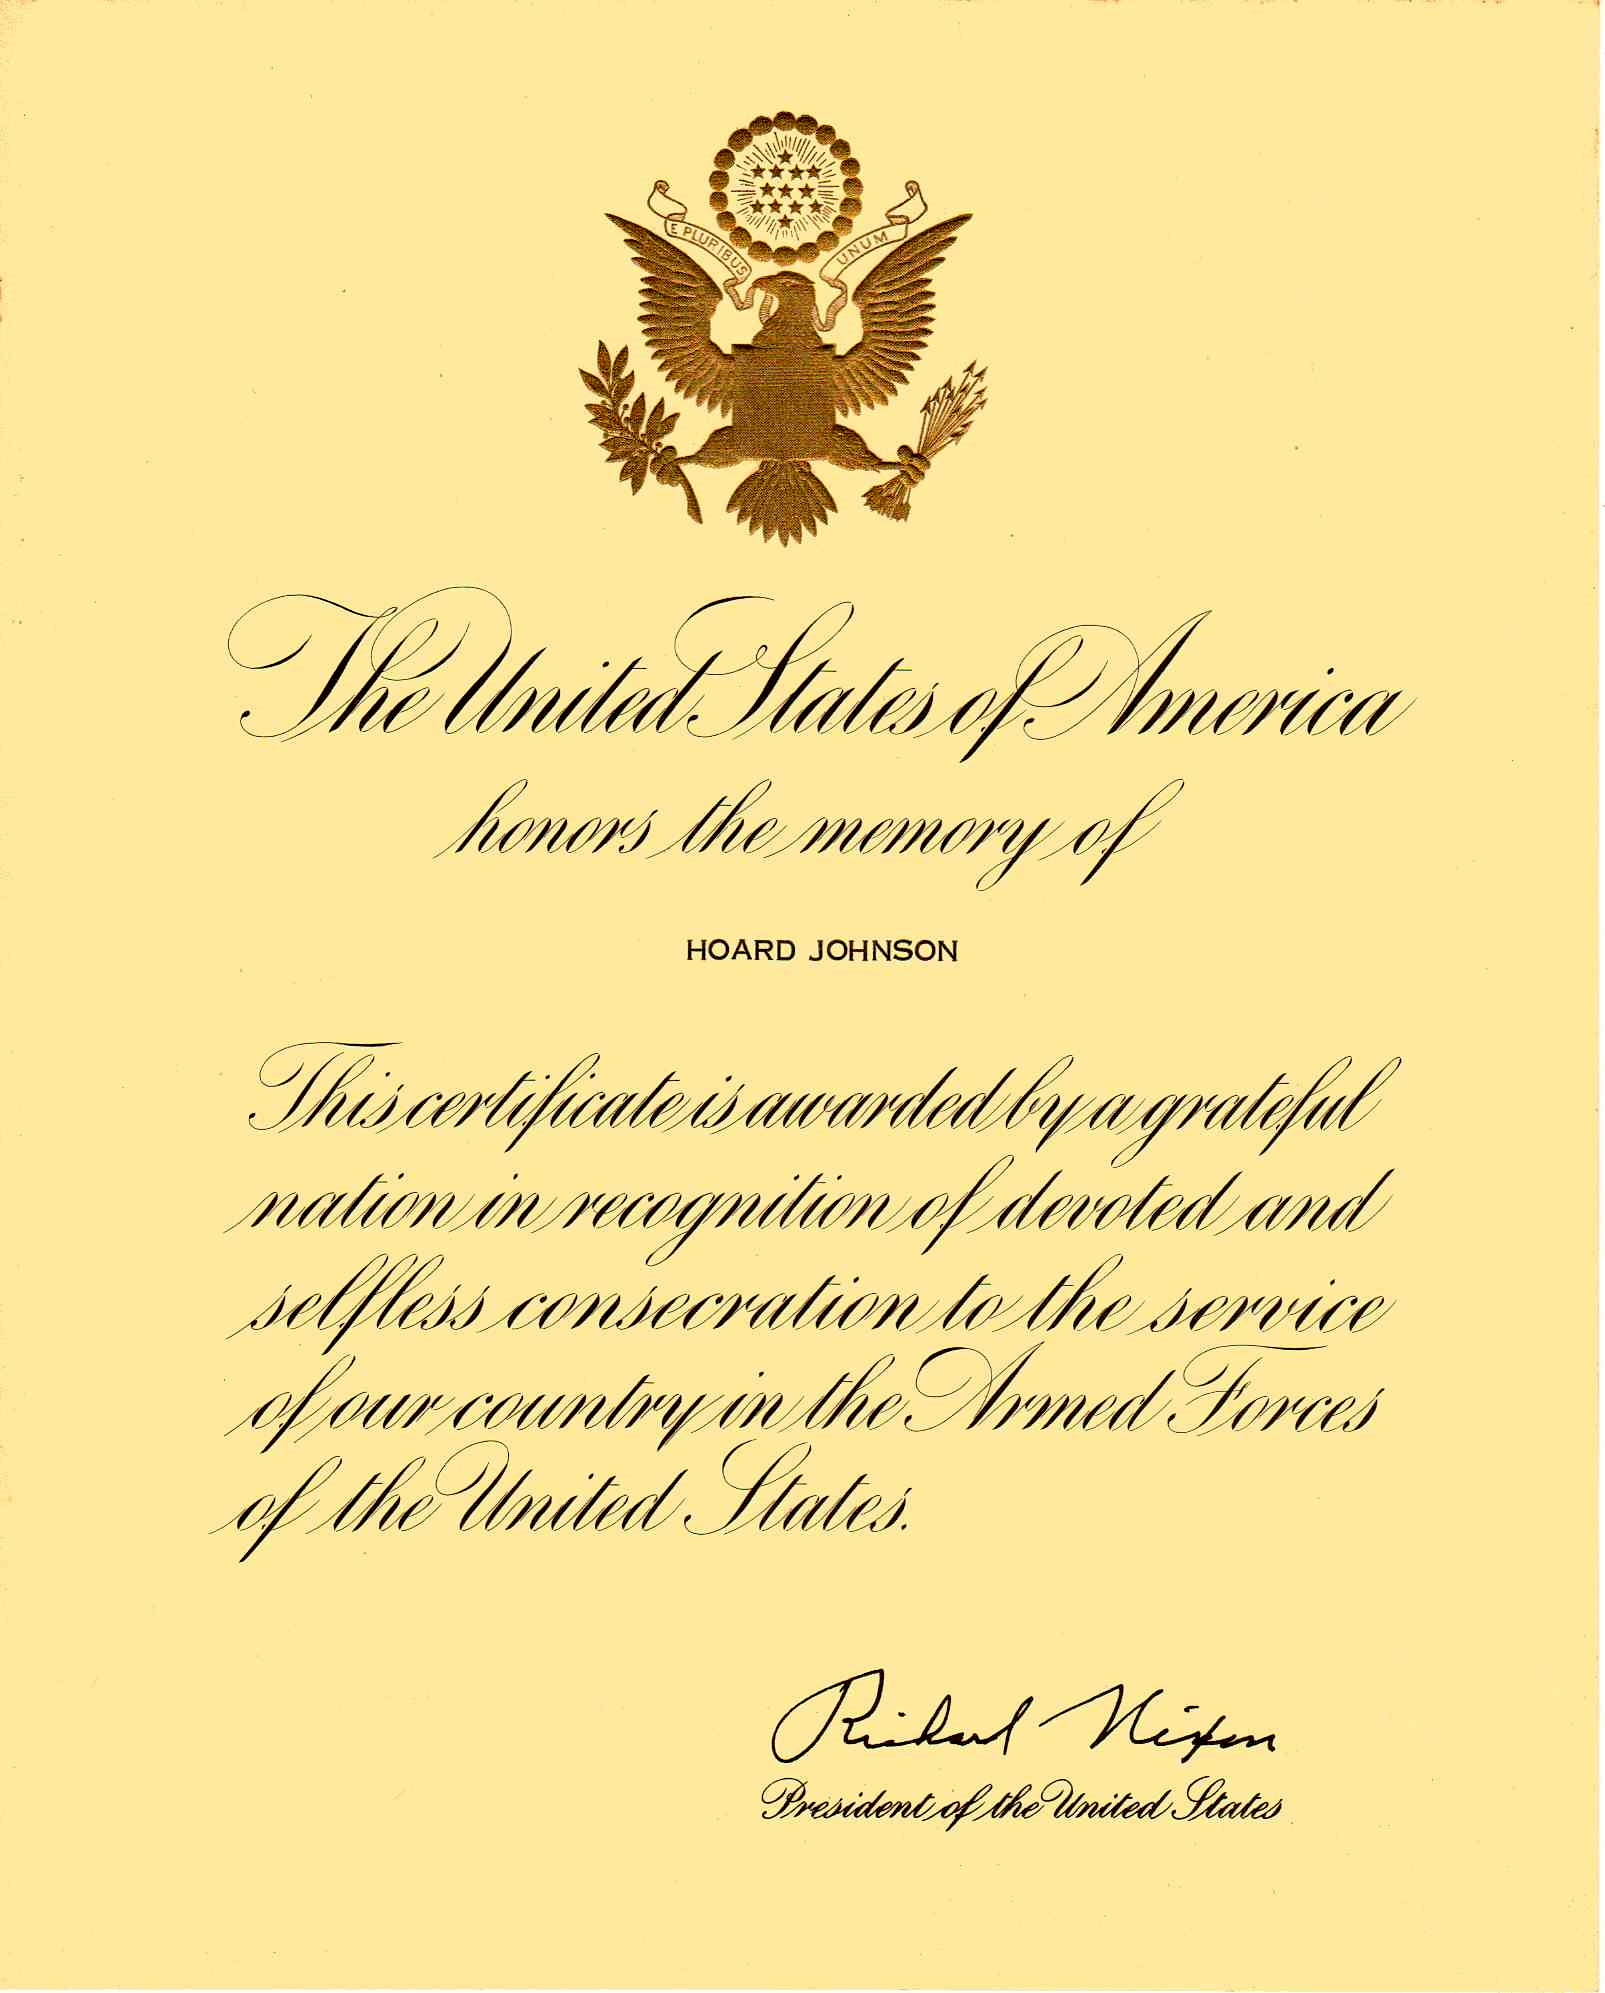 Hoard Johnson Letter from President Nixon